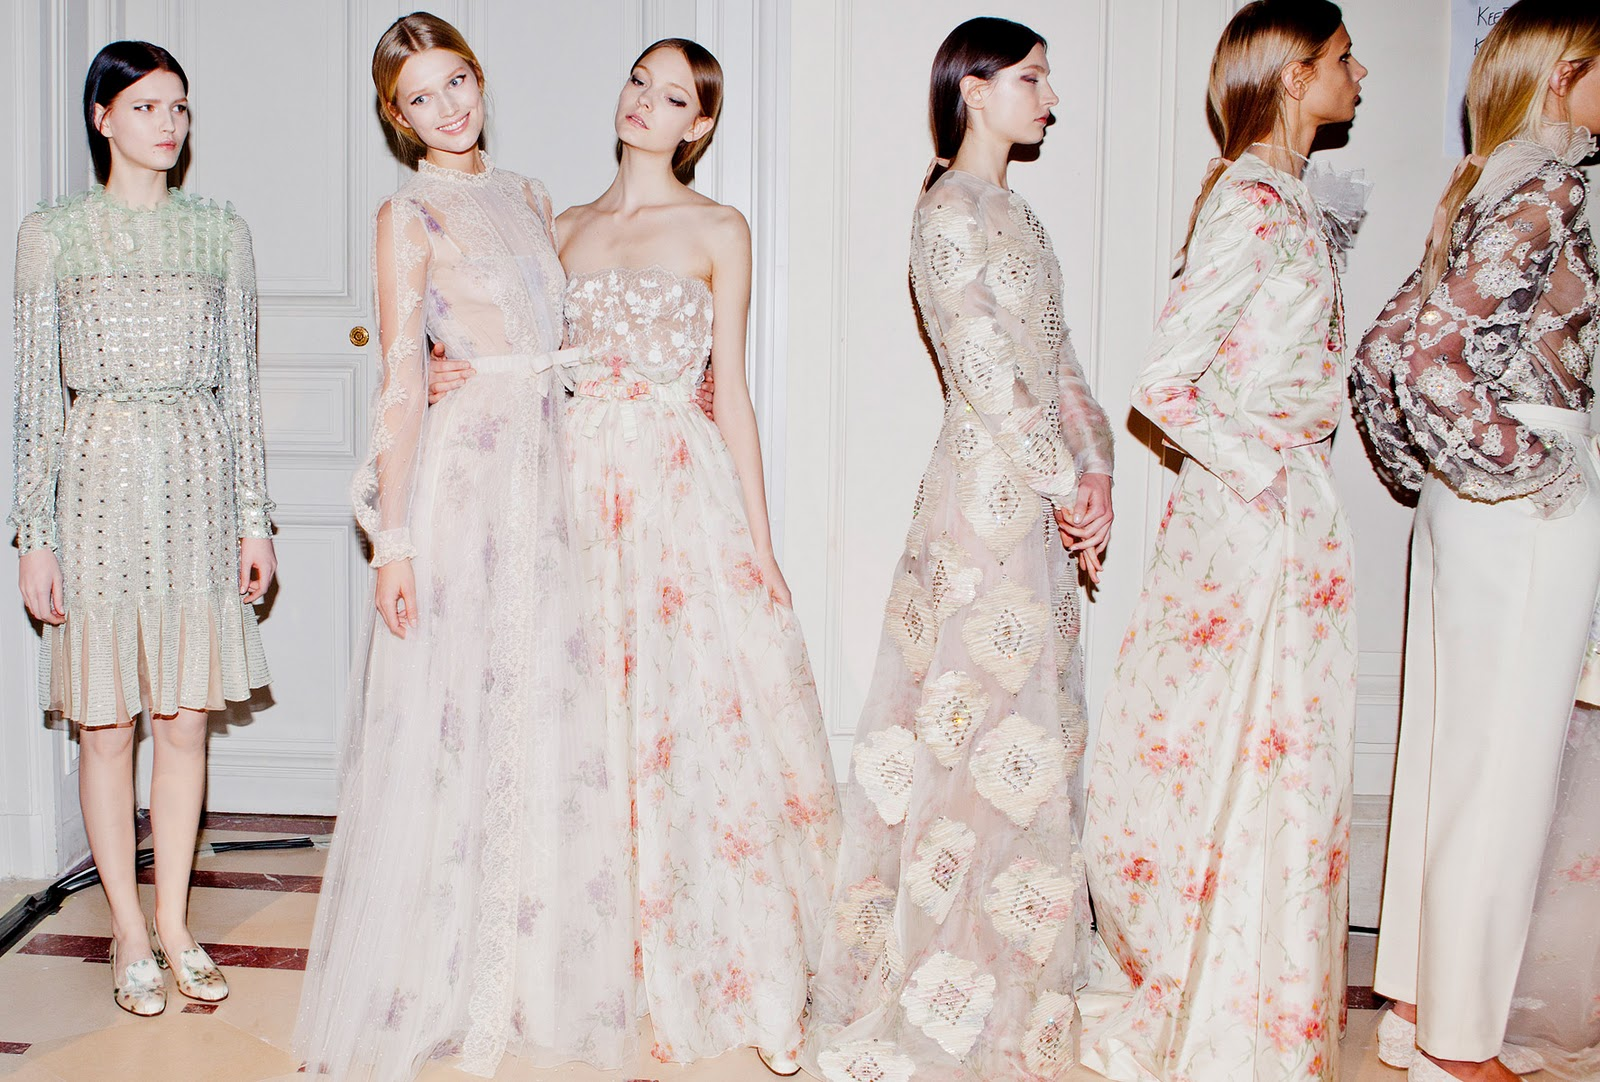 be-mine-valentino-a-girl-can-dream-enjoy-these-whimsical-gowns-with-best-and-valentino-gown